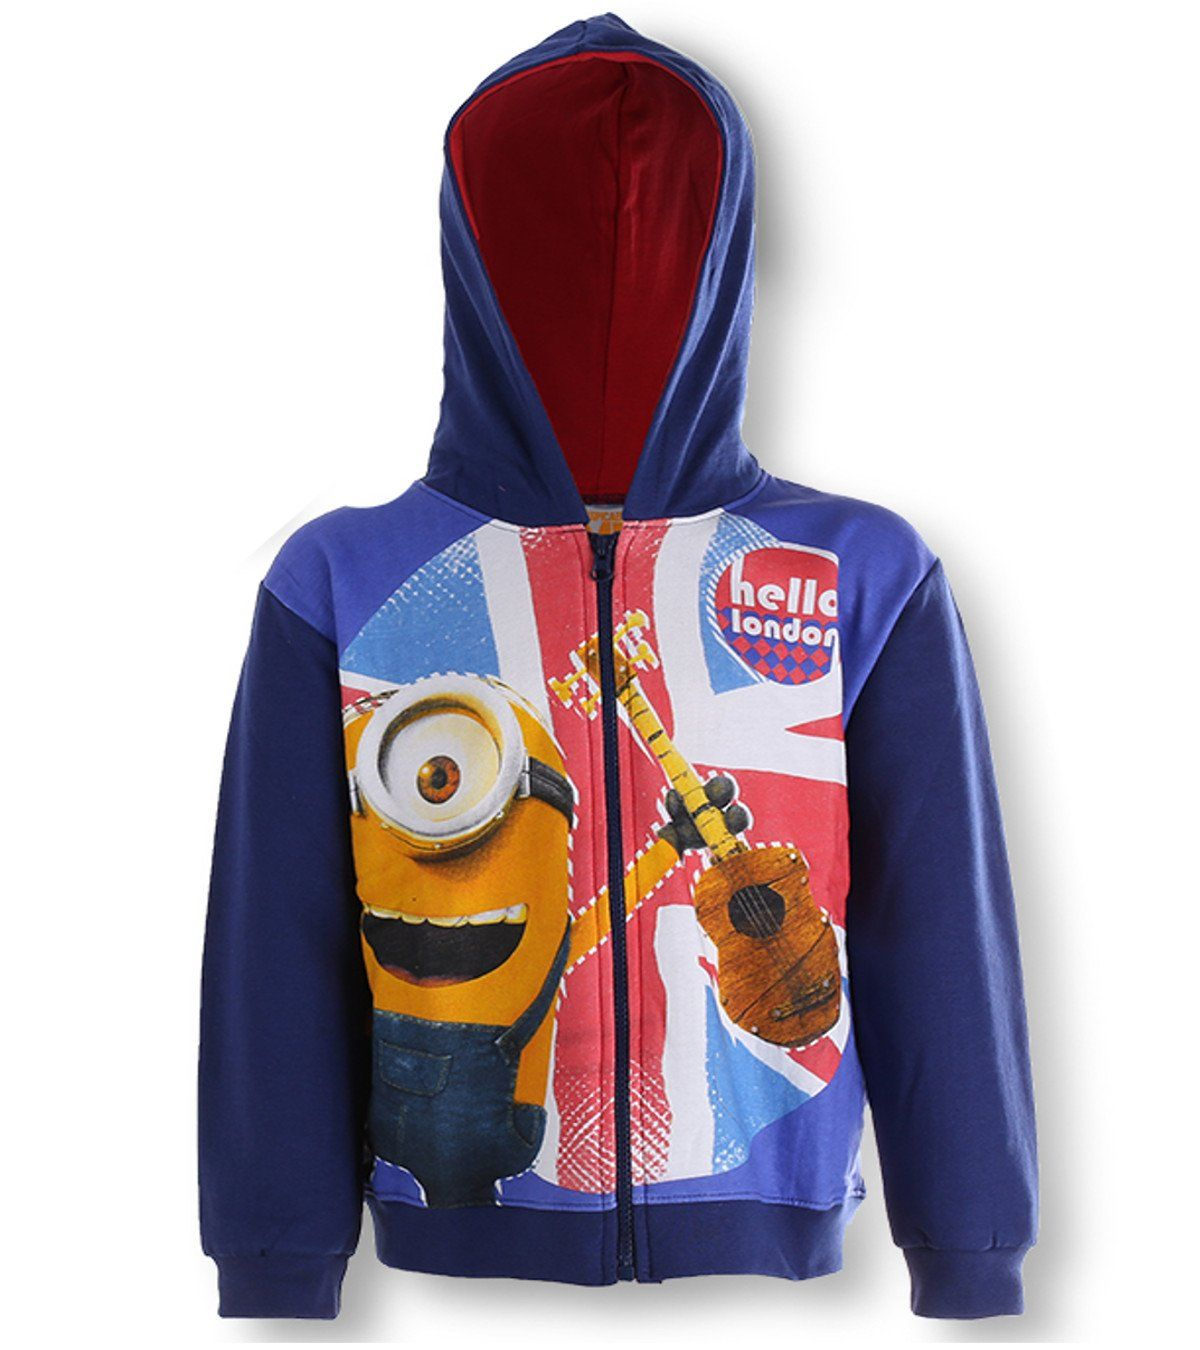 Despicable me minions zipped hooded blue fleece jumper jacket to